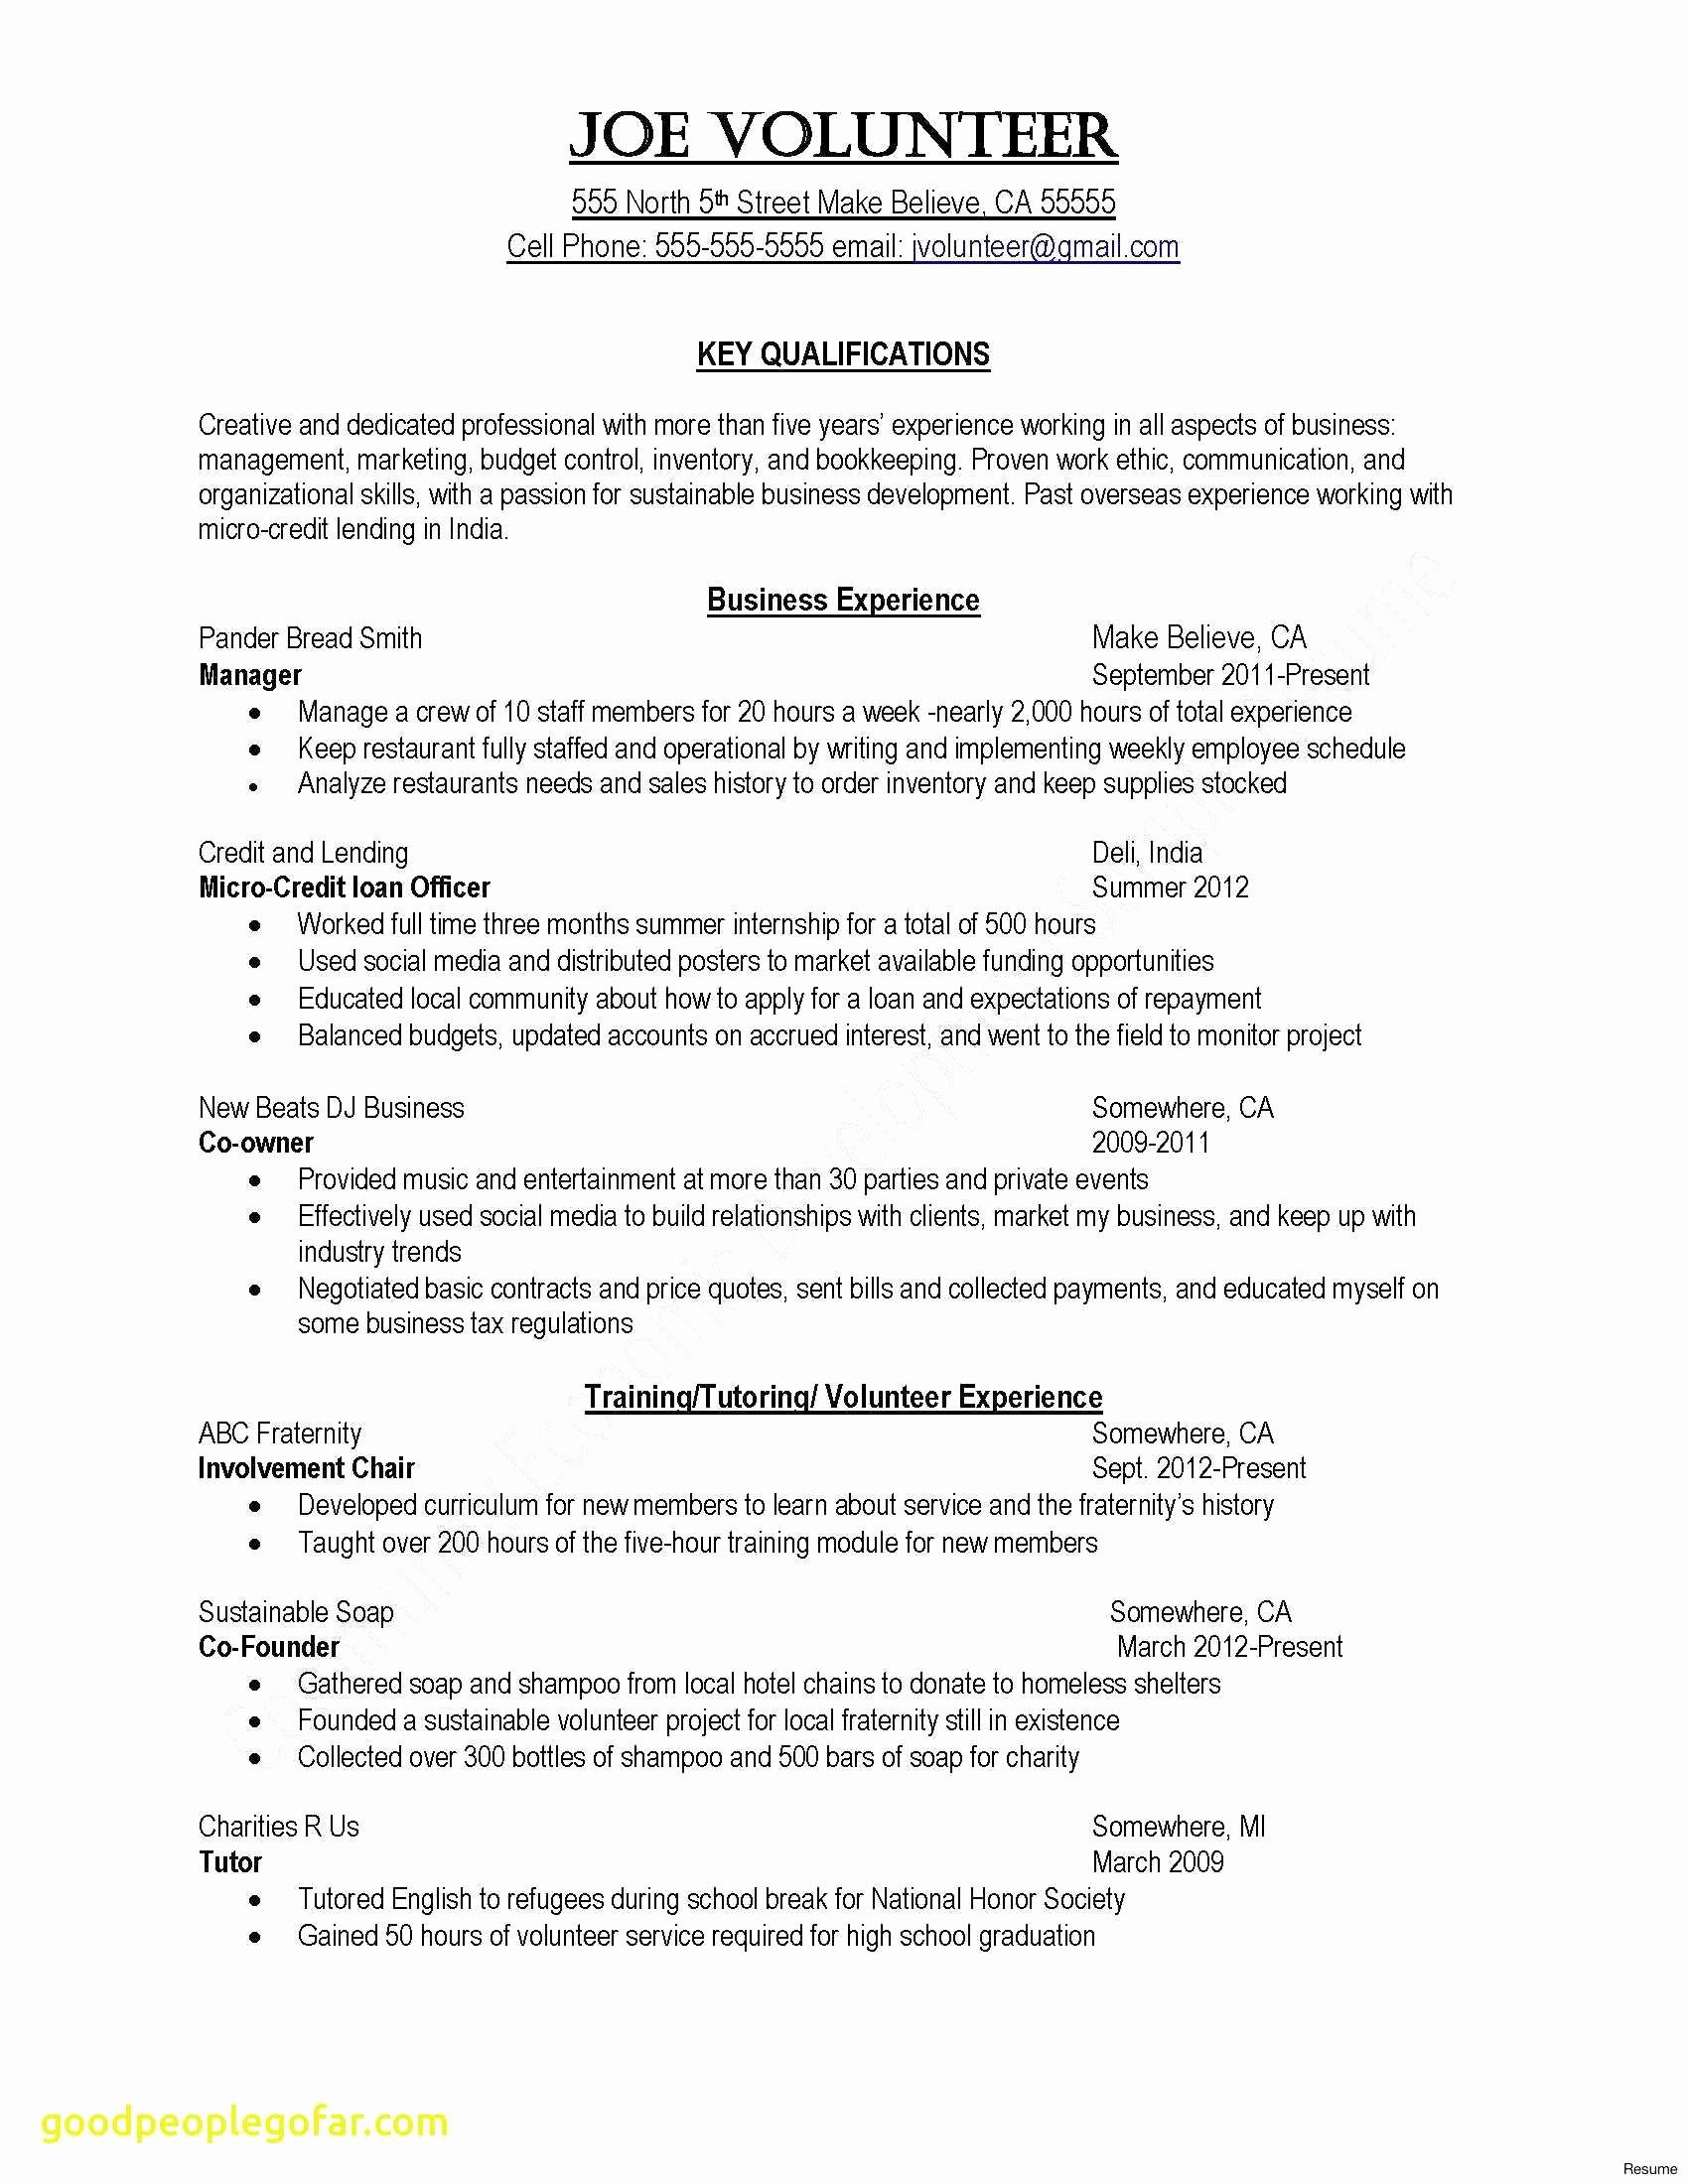 Email Template for Sending Resume - Email Sales Letter Template Sample